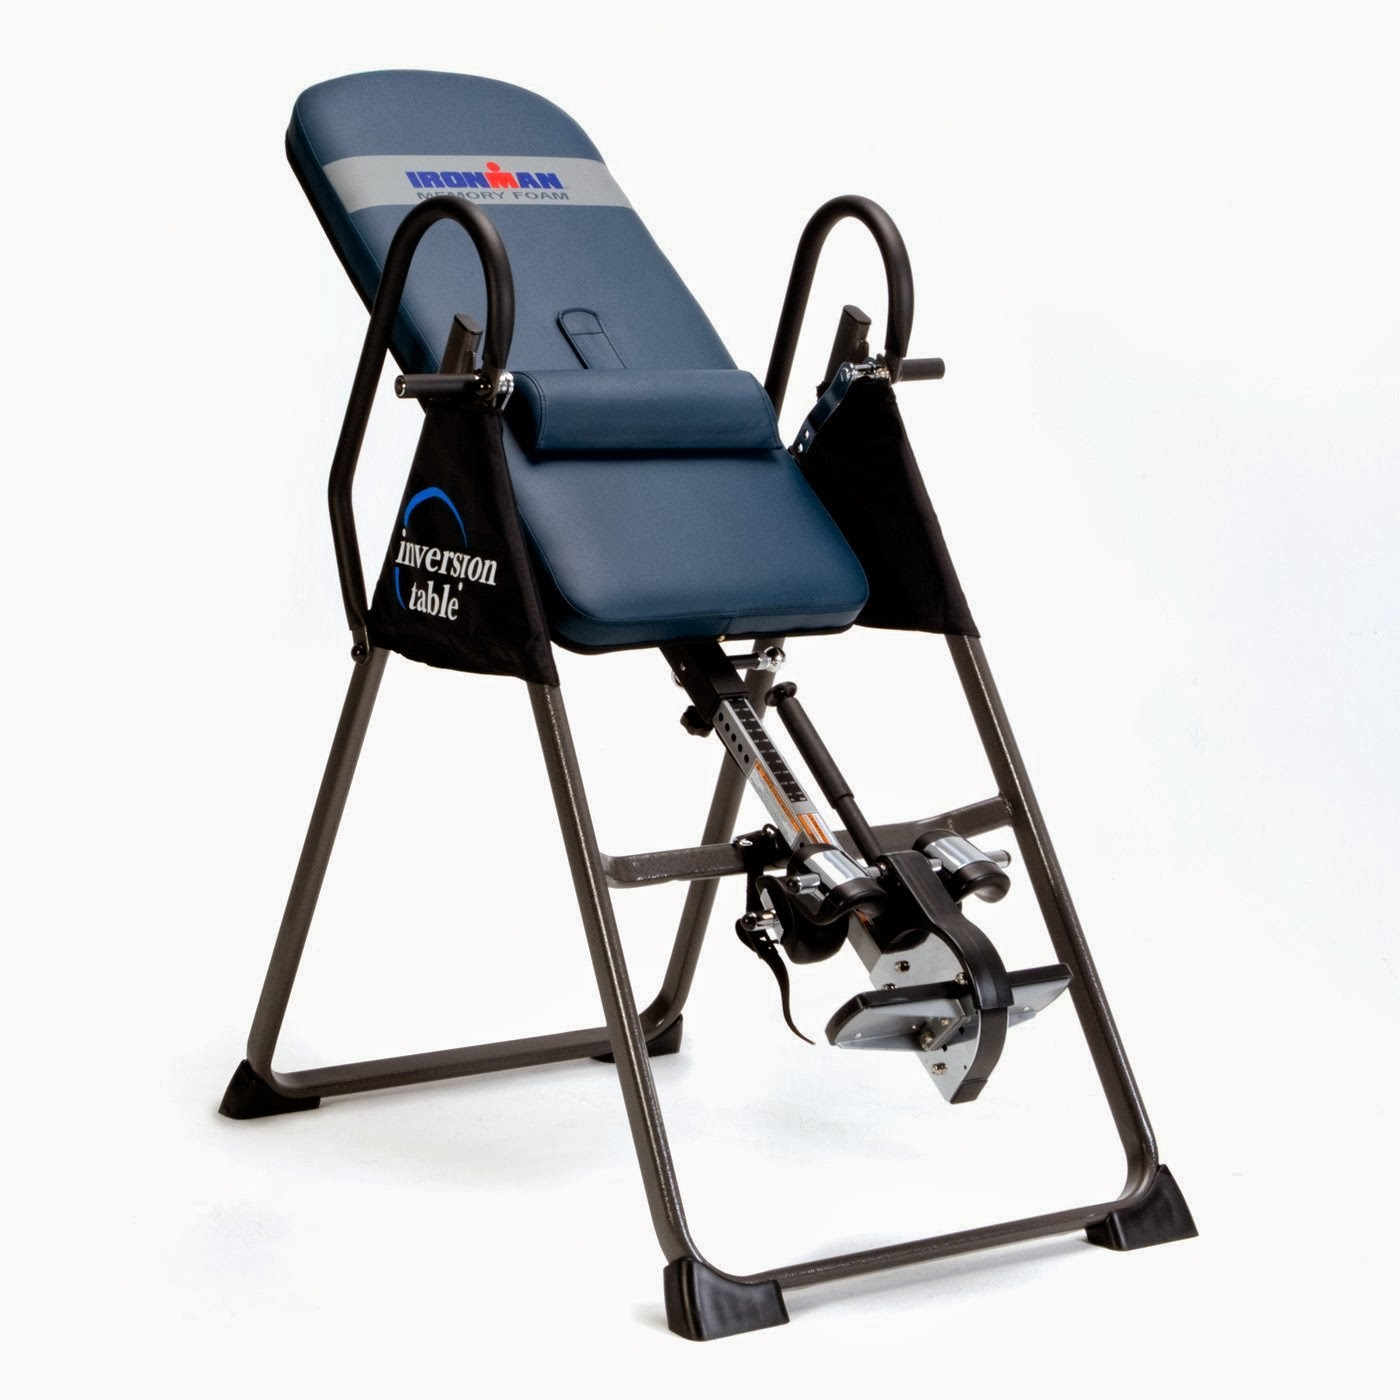 Ironman Gravity 4000 Inversion Table, benefits of inversion tables for back pain relief